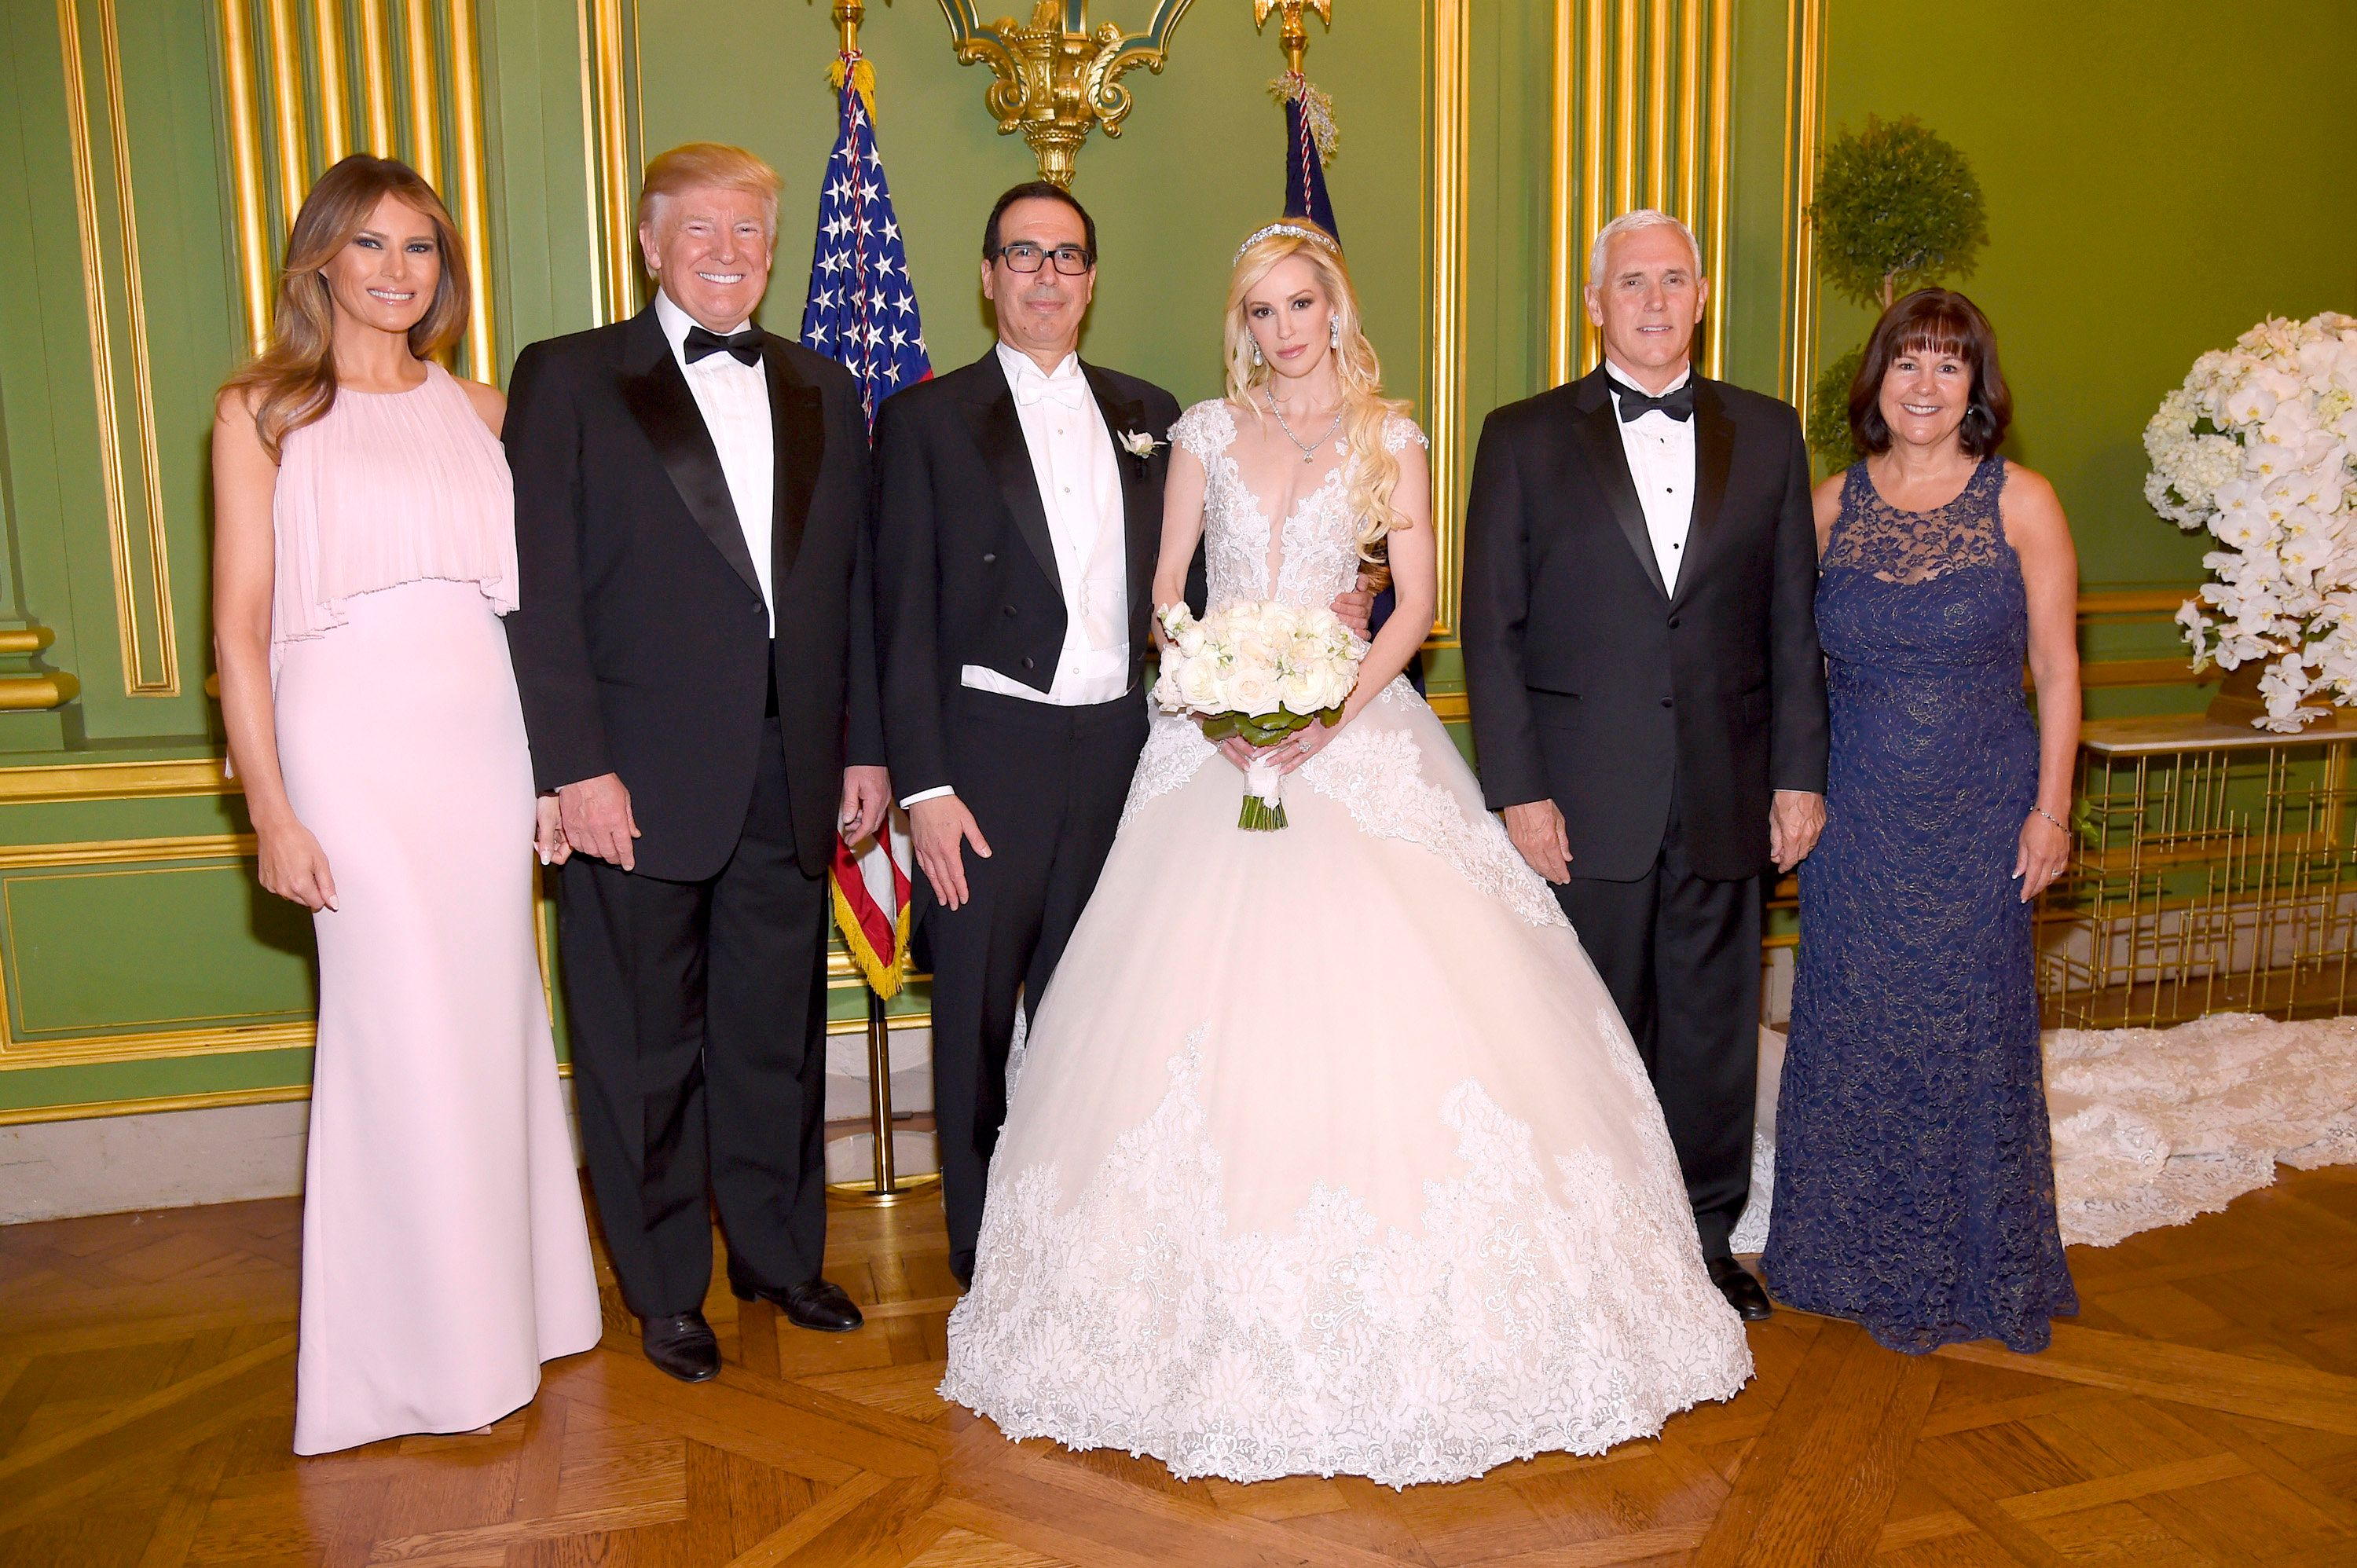 Mnuchin's Wife Linton Calls Critic 'Adorably Out of Touch' in Instagram Brouhaha